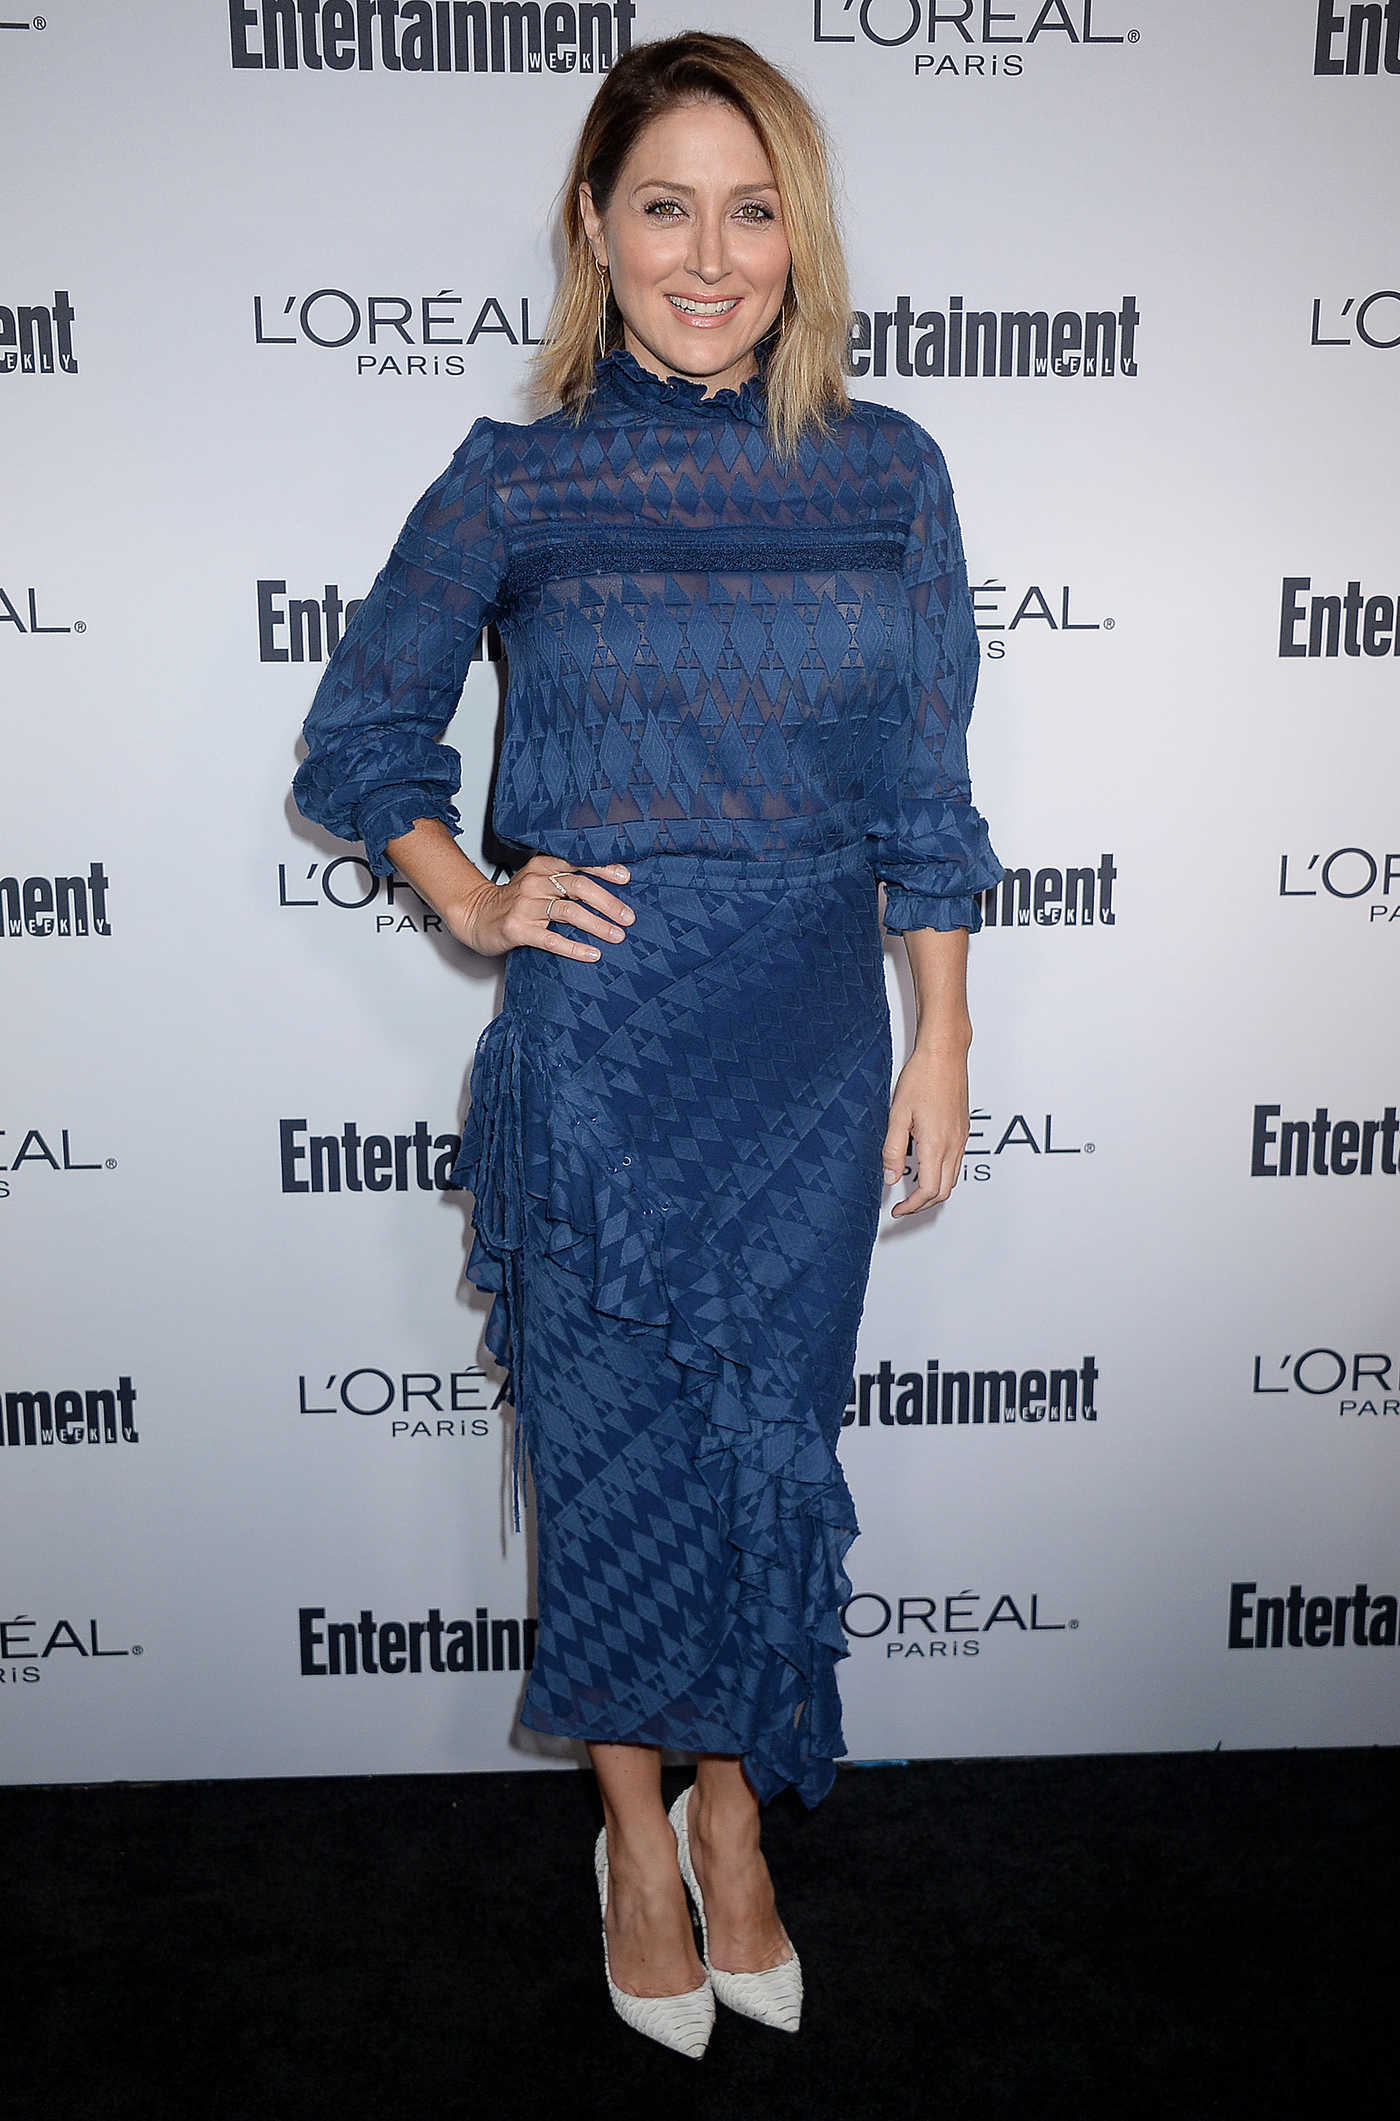 Sasha Alexander at the Entertainment Weekly Pre-Emmy Party in Los Angeles 09/16/2016